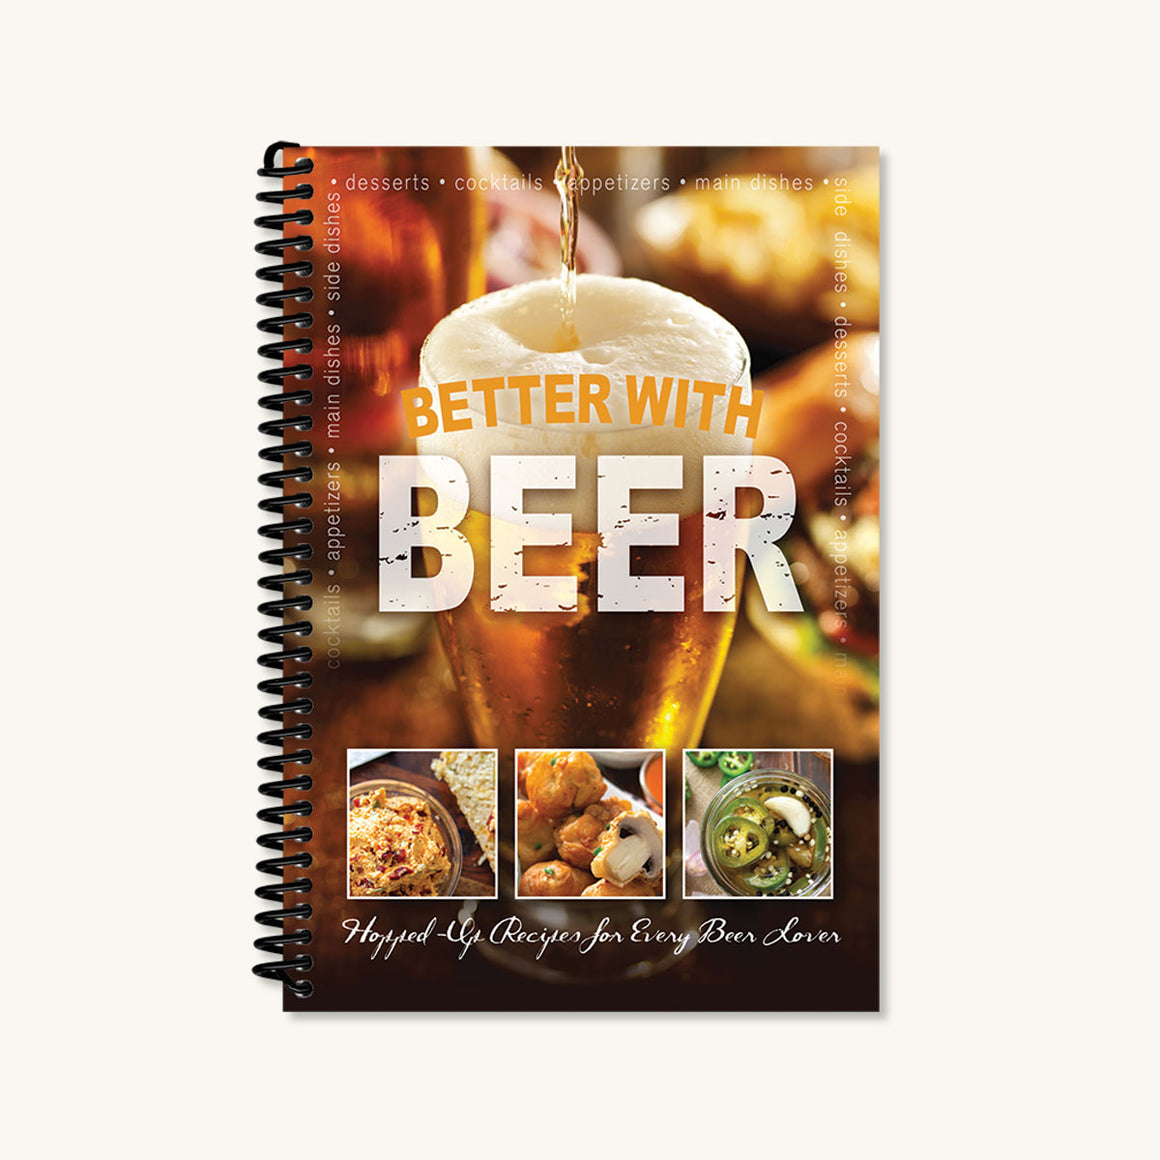 Better with Beer